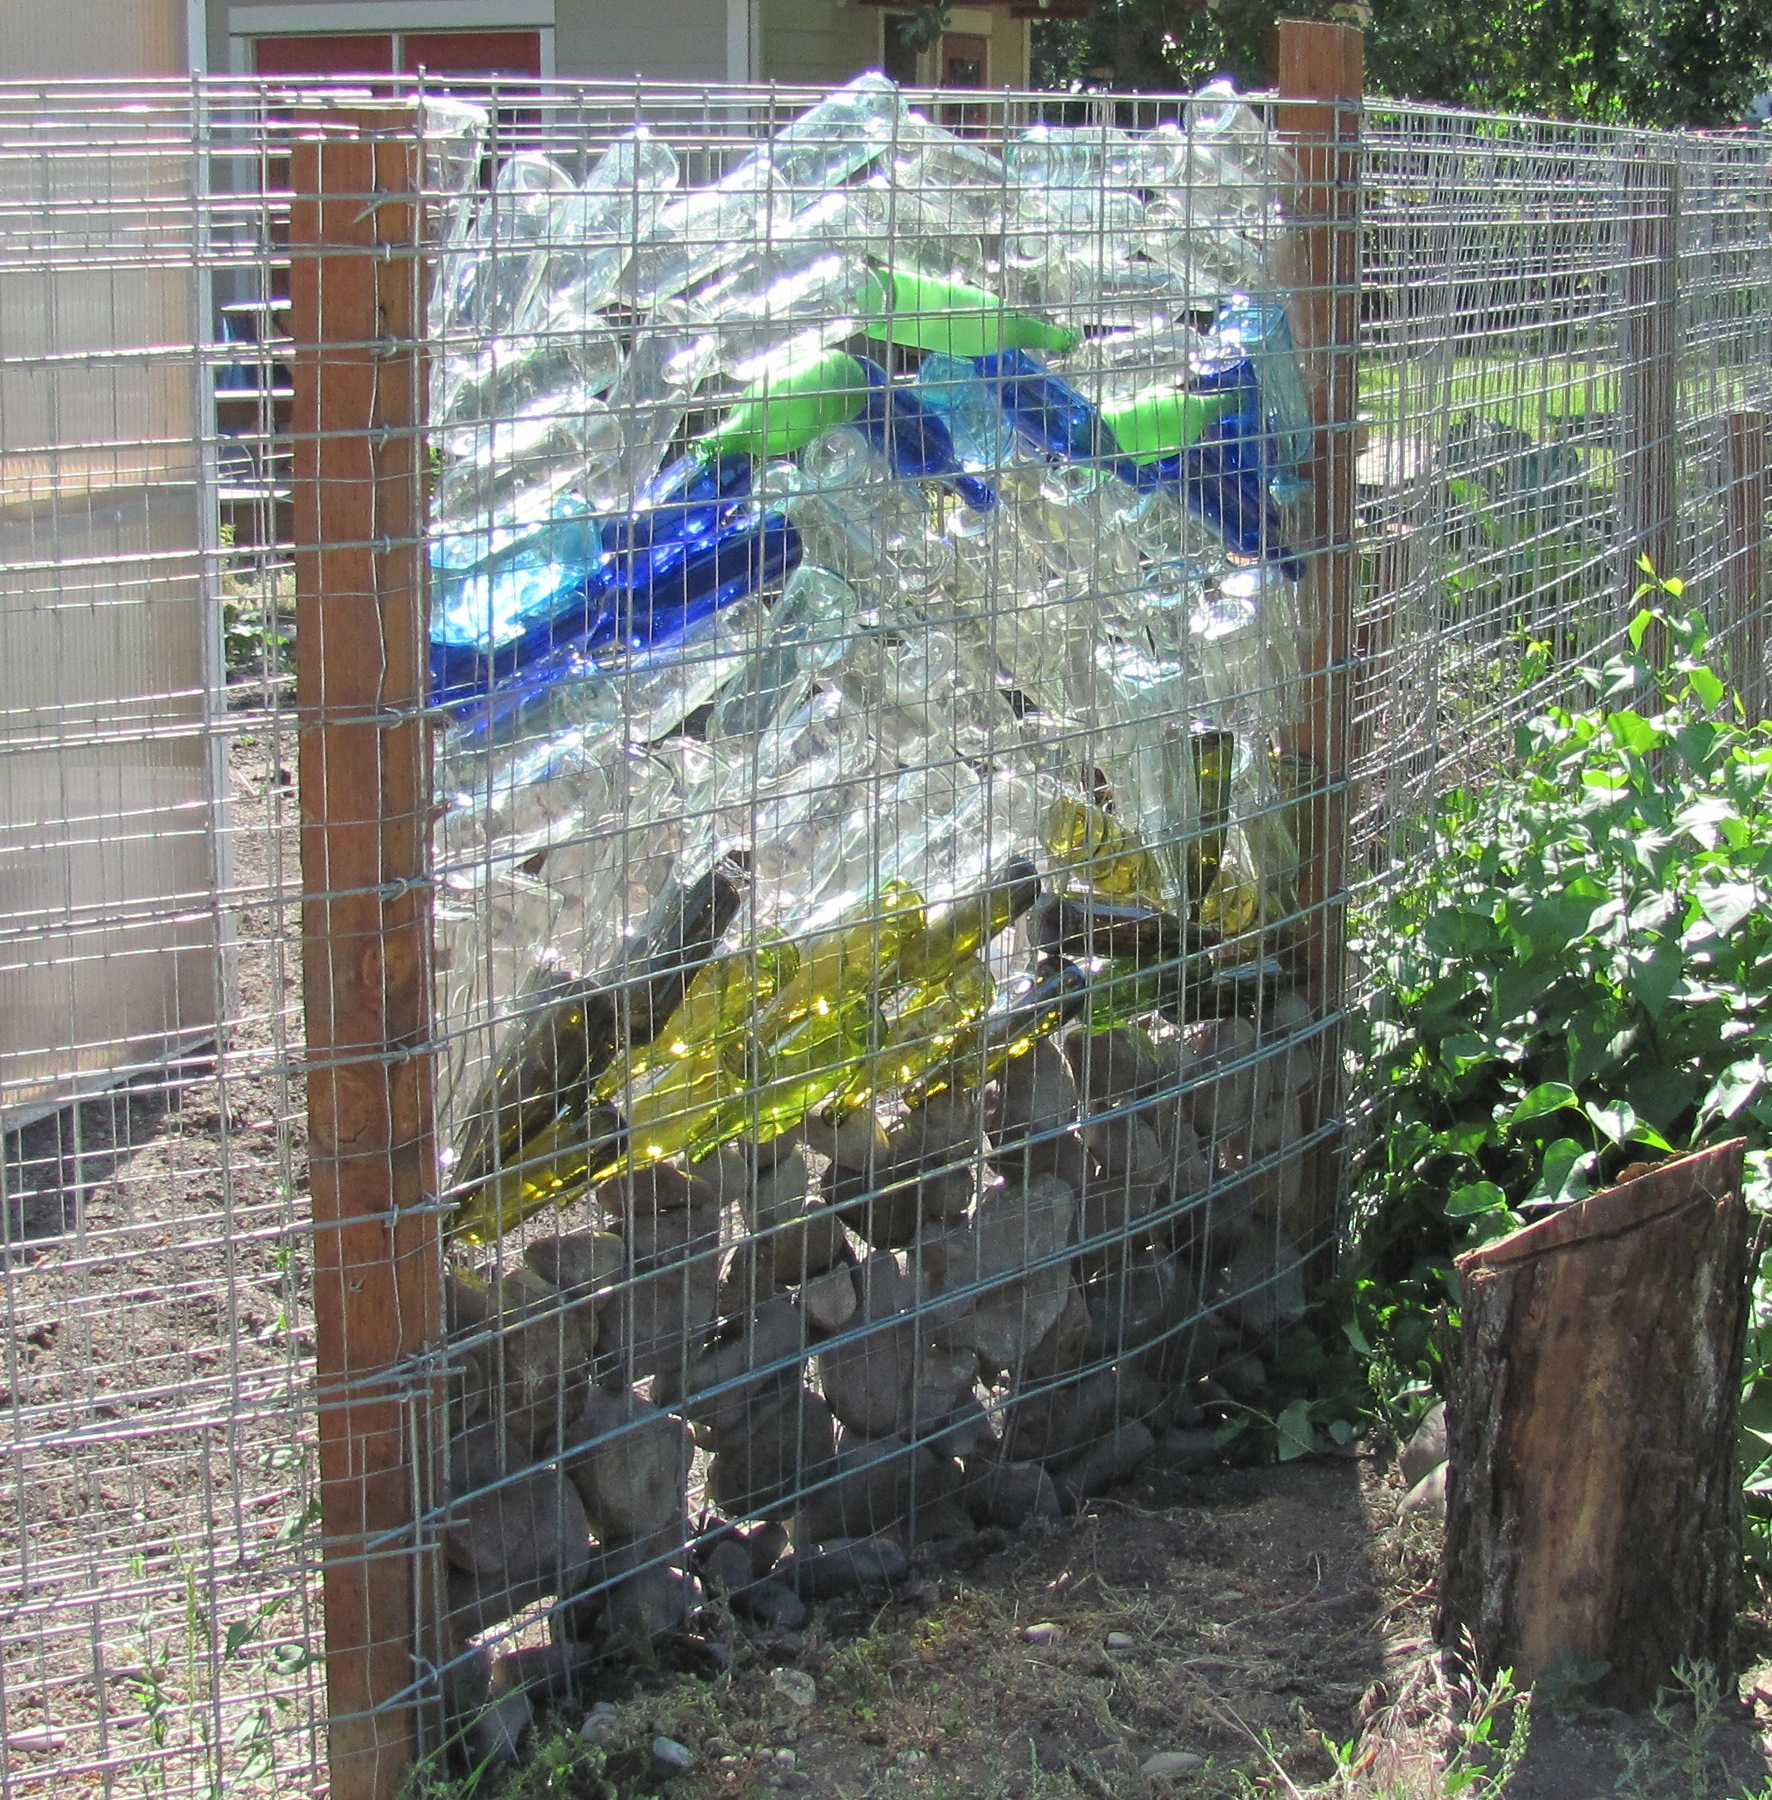 Creative Fence Design ? DIY ideas for your own front yard ? Part 3